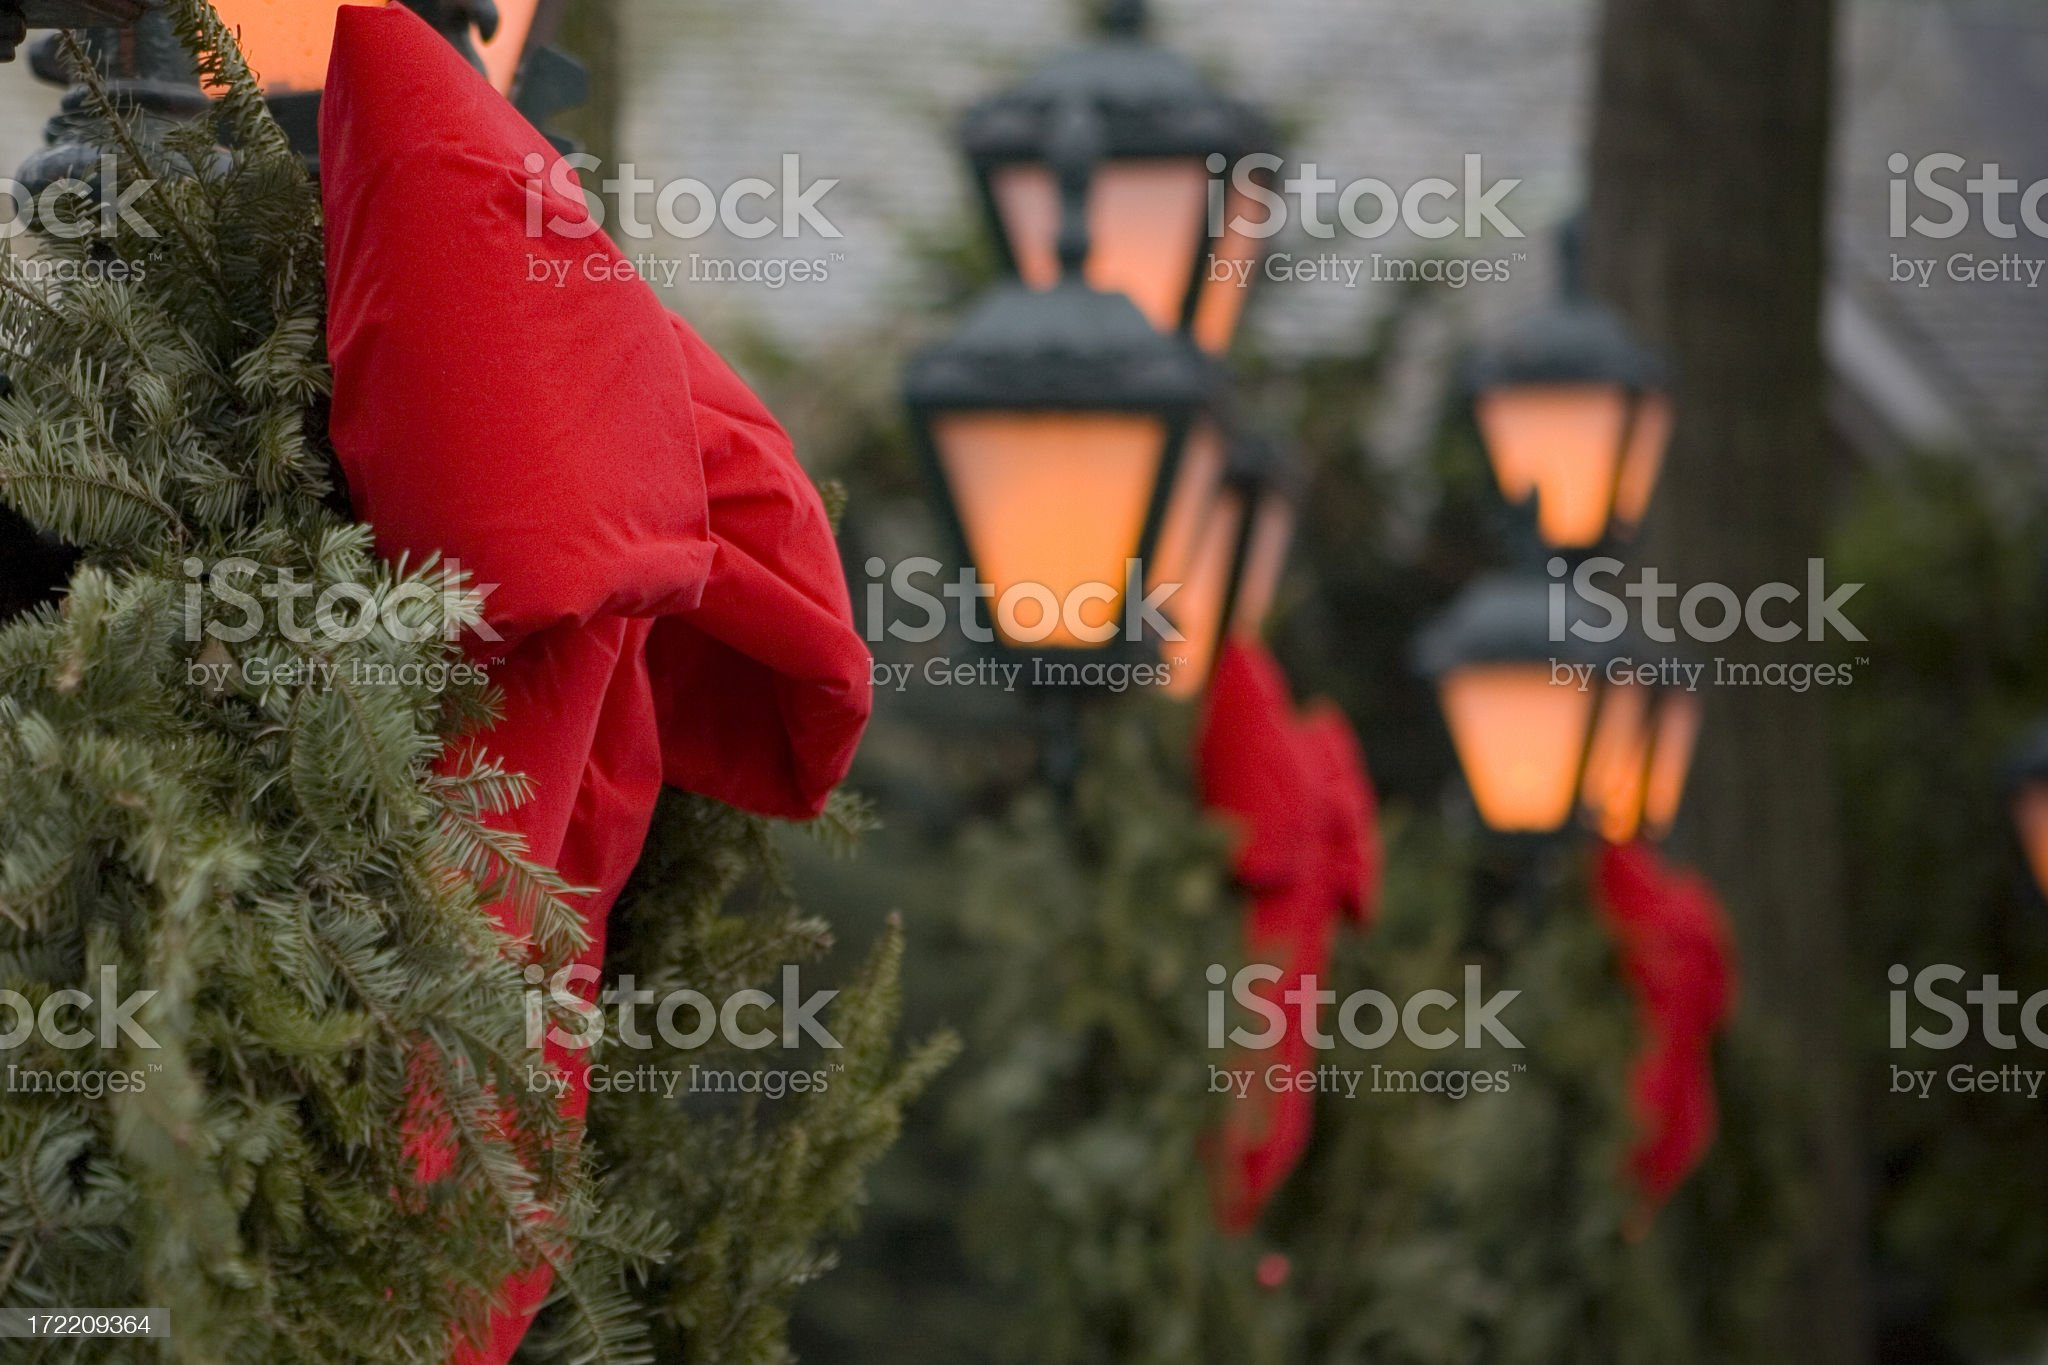 Christmas Lamp Posts royalty-free stock photo